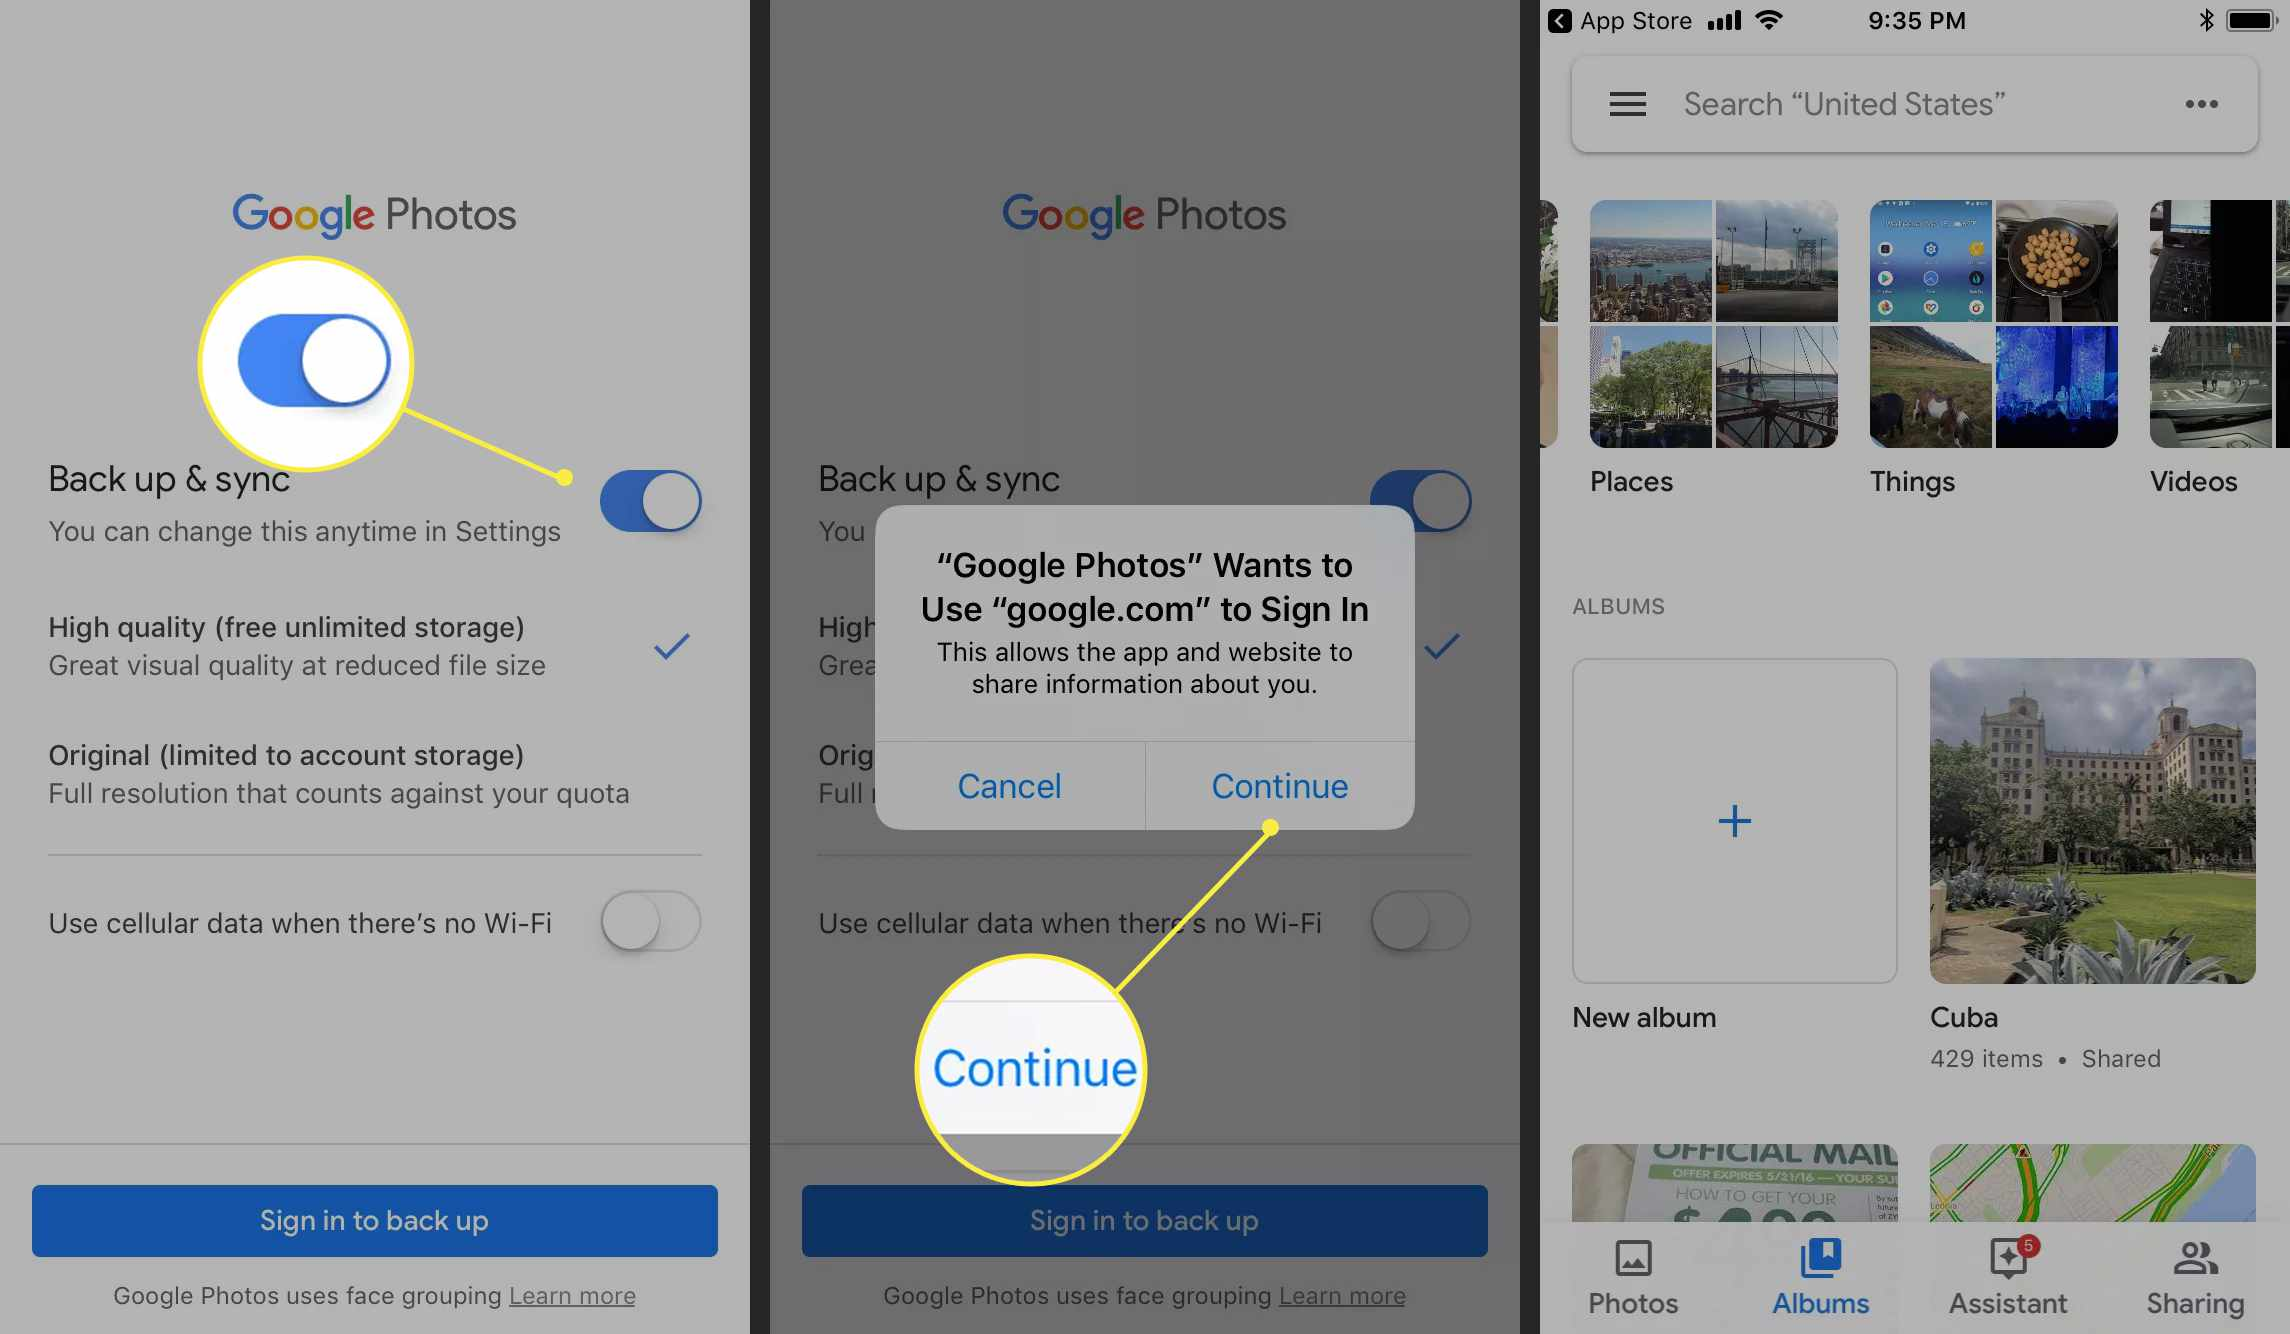 An Android user turns on backup & sync for Google Photos